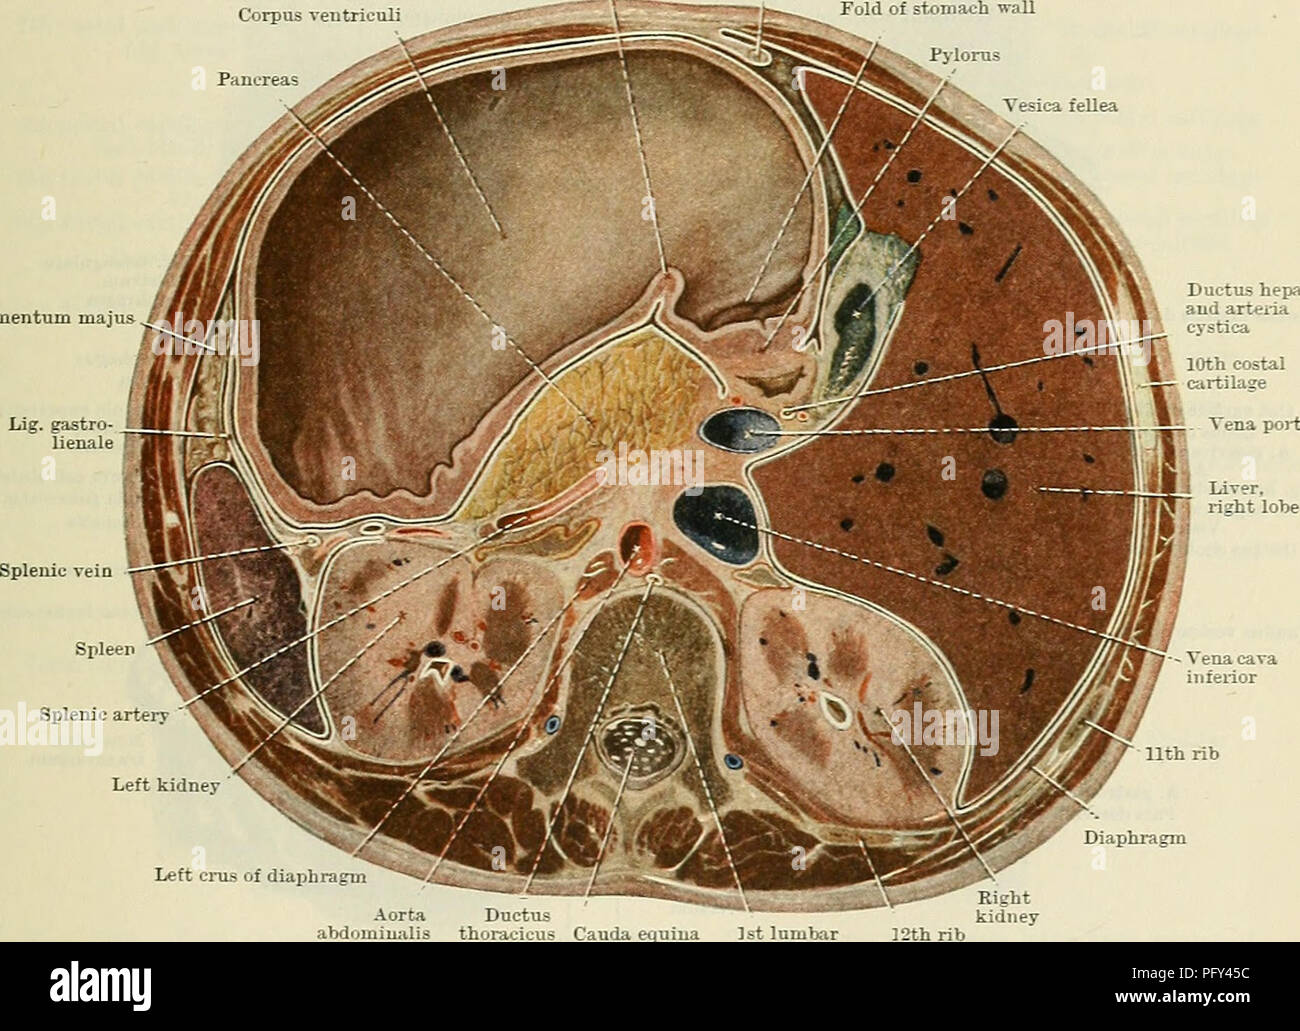 Cunninghams Text Book Of Anatomy Anatomy Eelations And Connexions